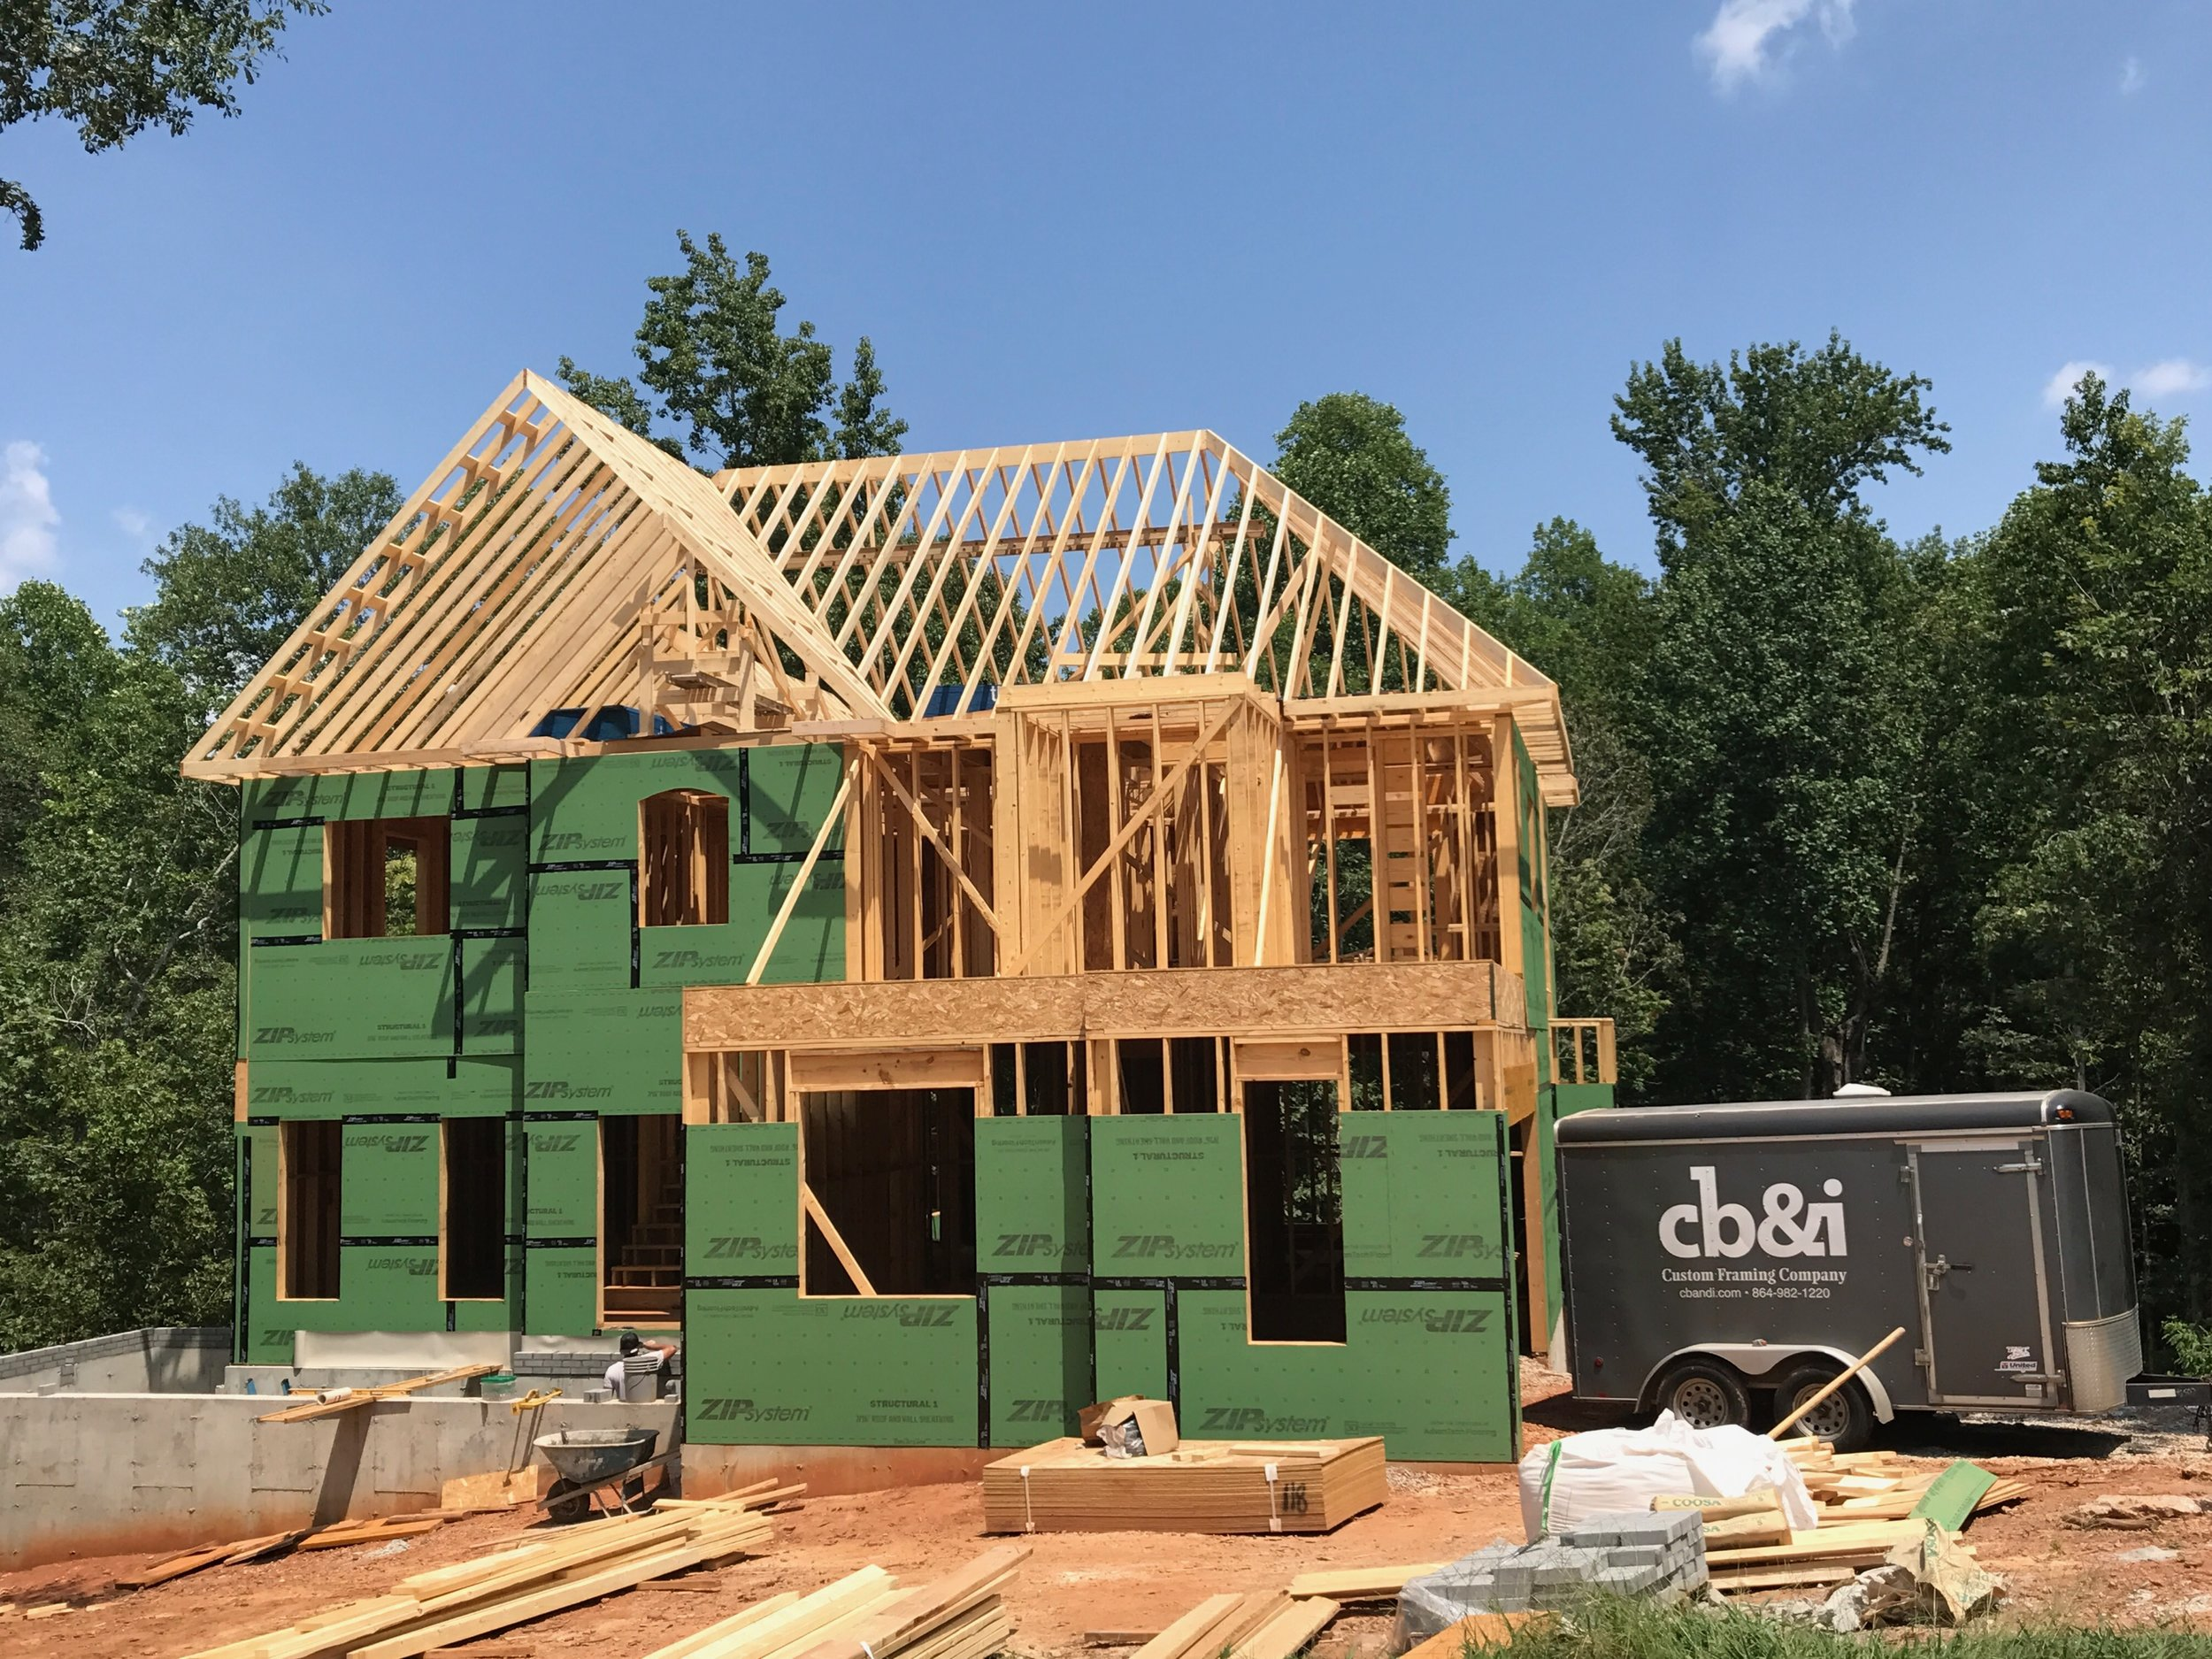 Roof System nearing completion. More pictures and updates to come as we wrap up the framing on this beautiful home.